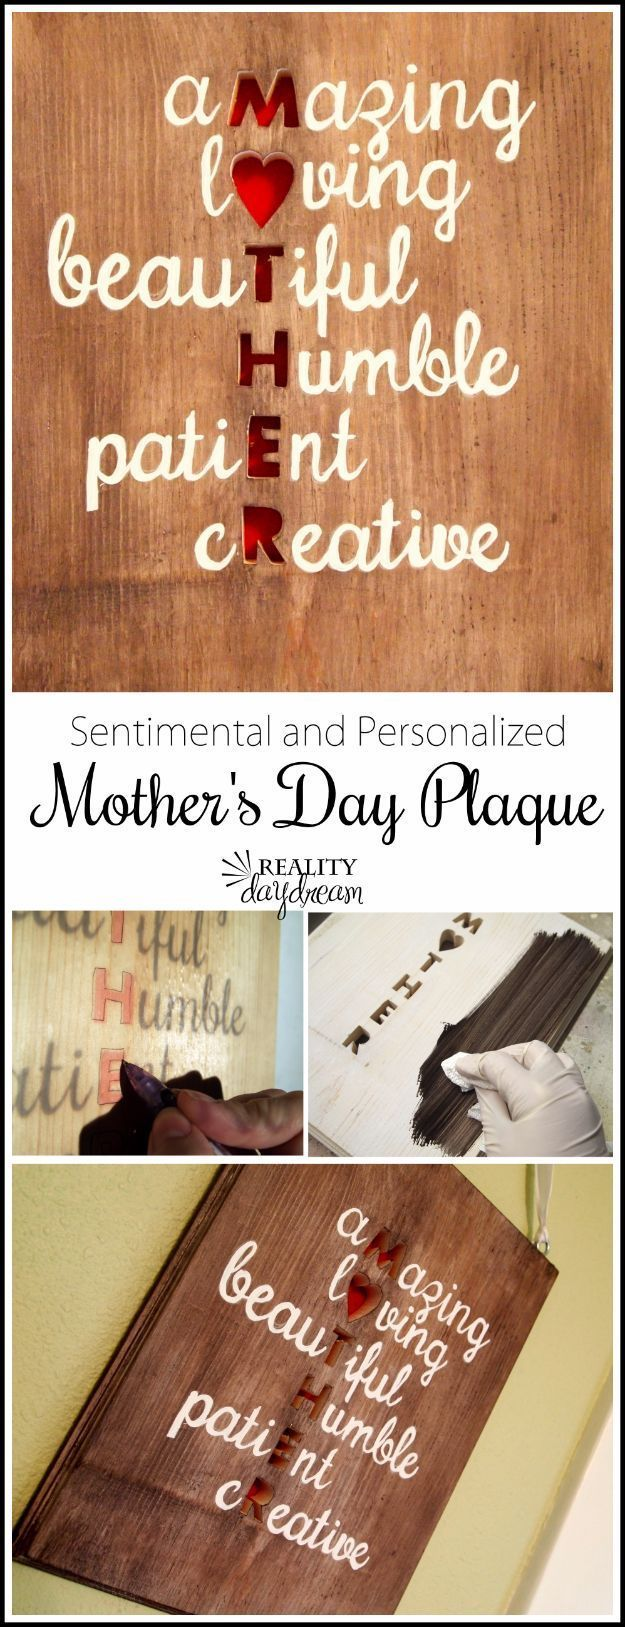 35 Creatively Thoughtful DIY Mother's Day Gifts | Homemade, Mom ...